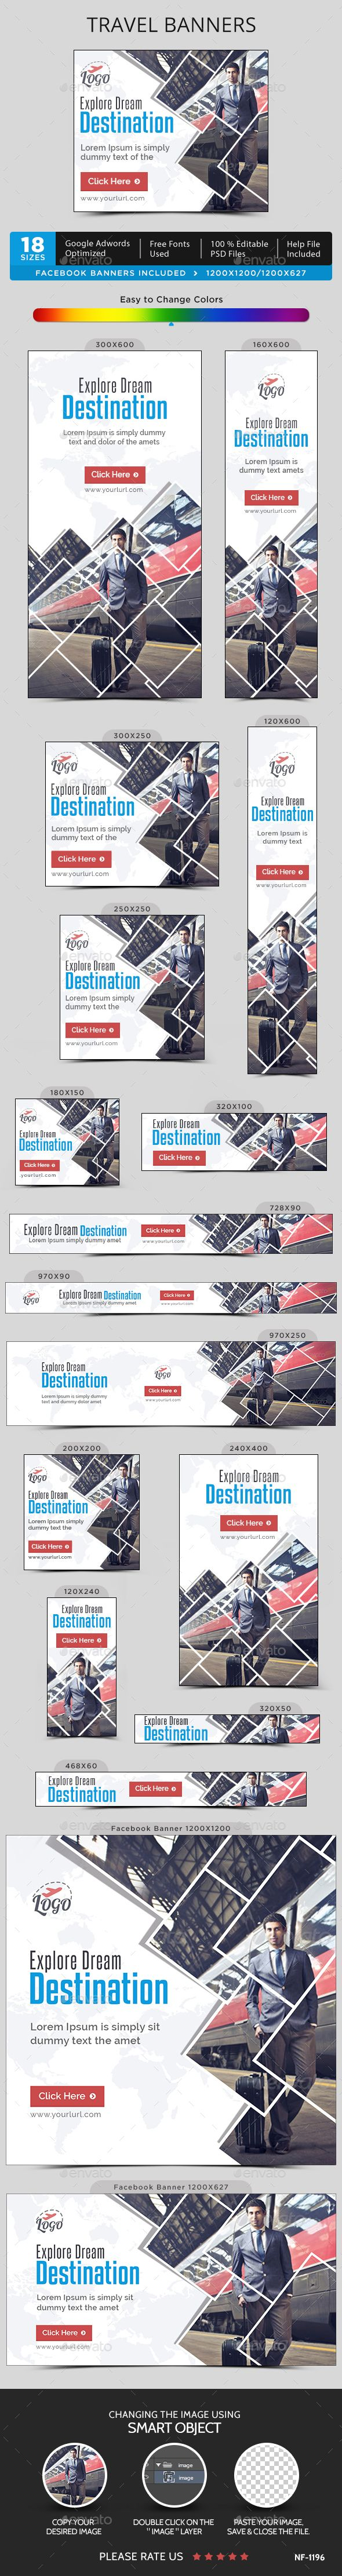 Travel Web Banners Template PSD. Download here: http://graphicriver.net/item/travel-banners/15633802?ref=ksioks